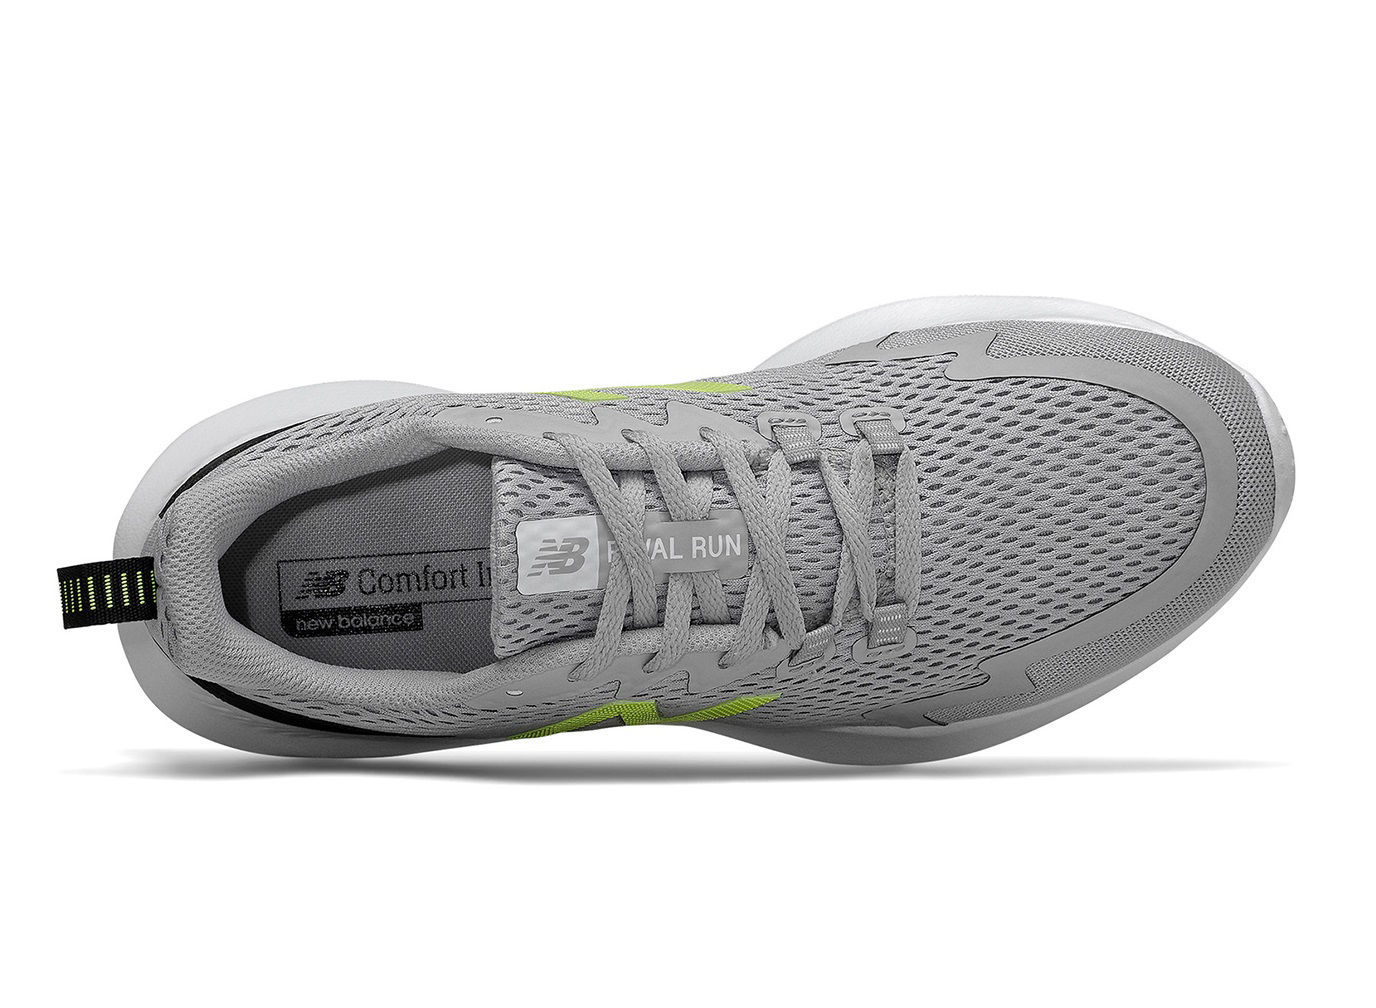 Picture of NB Performance Mens Shoes - MRYVLLC1 (Gray)